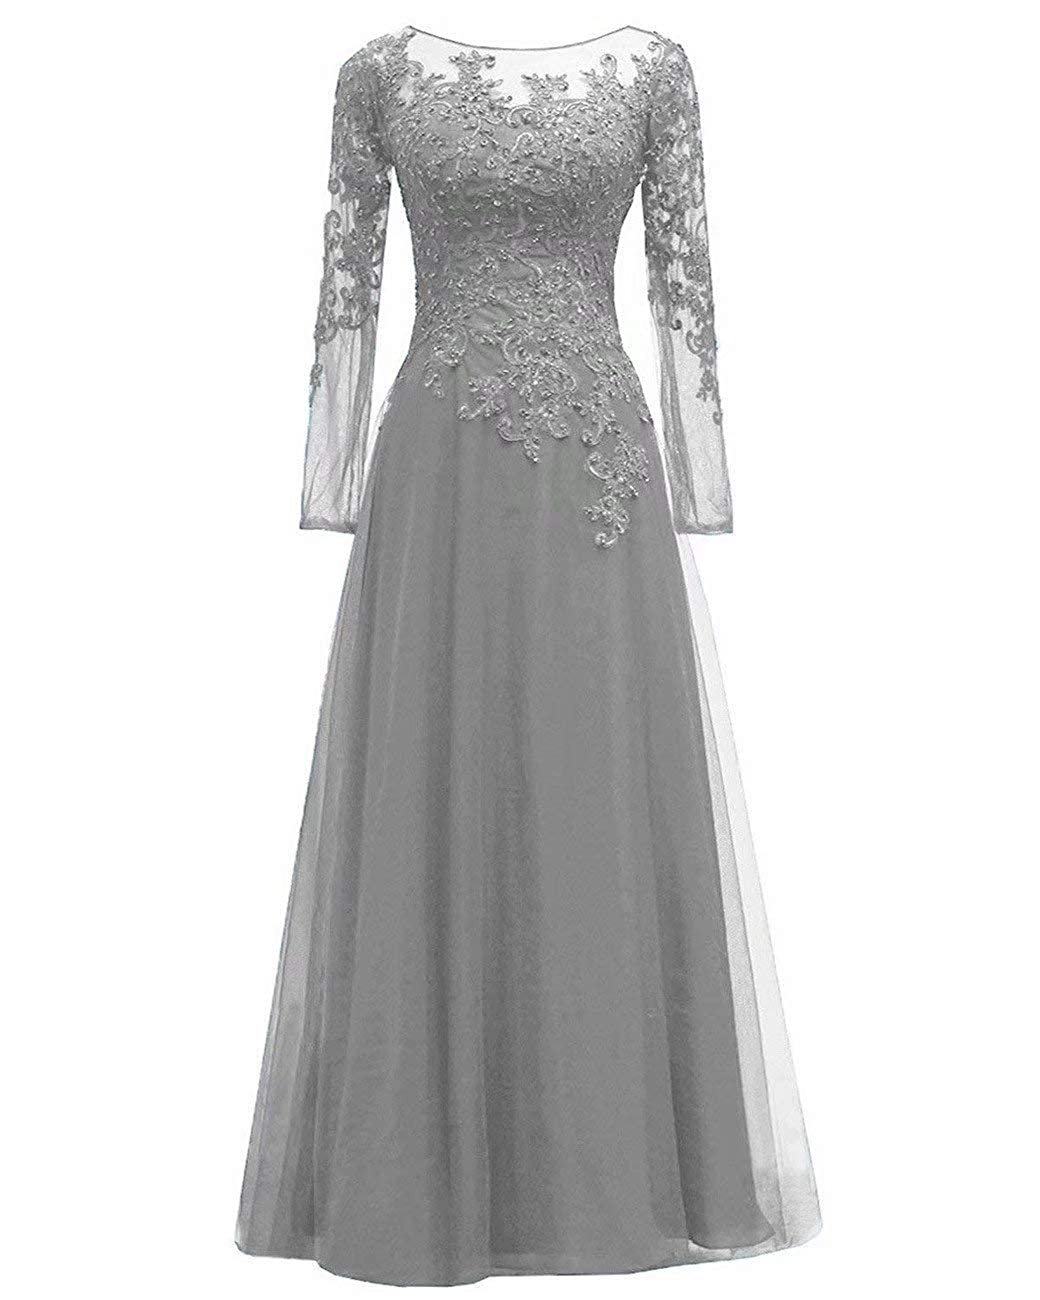 Silver LORIE Women's Beaded Appliques Tulle Mother of The Bride Dress Long Sleeves Formal Evening Gown